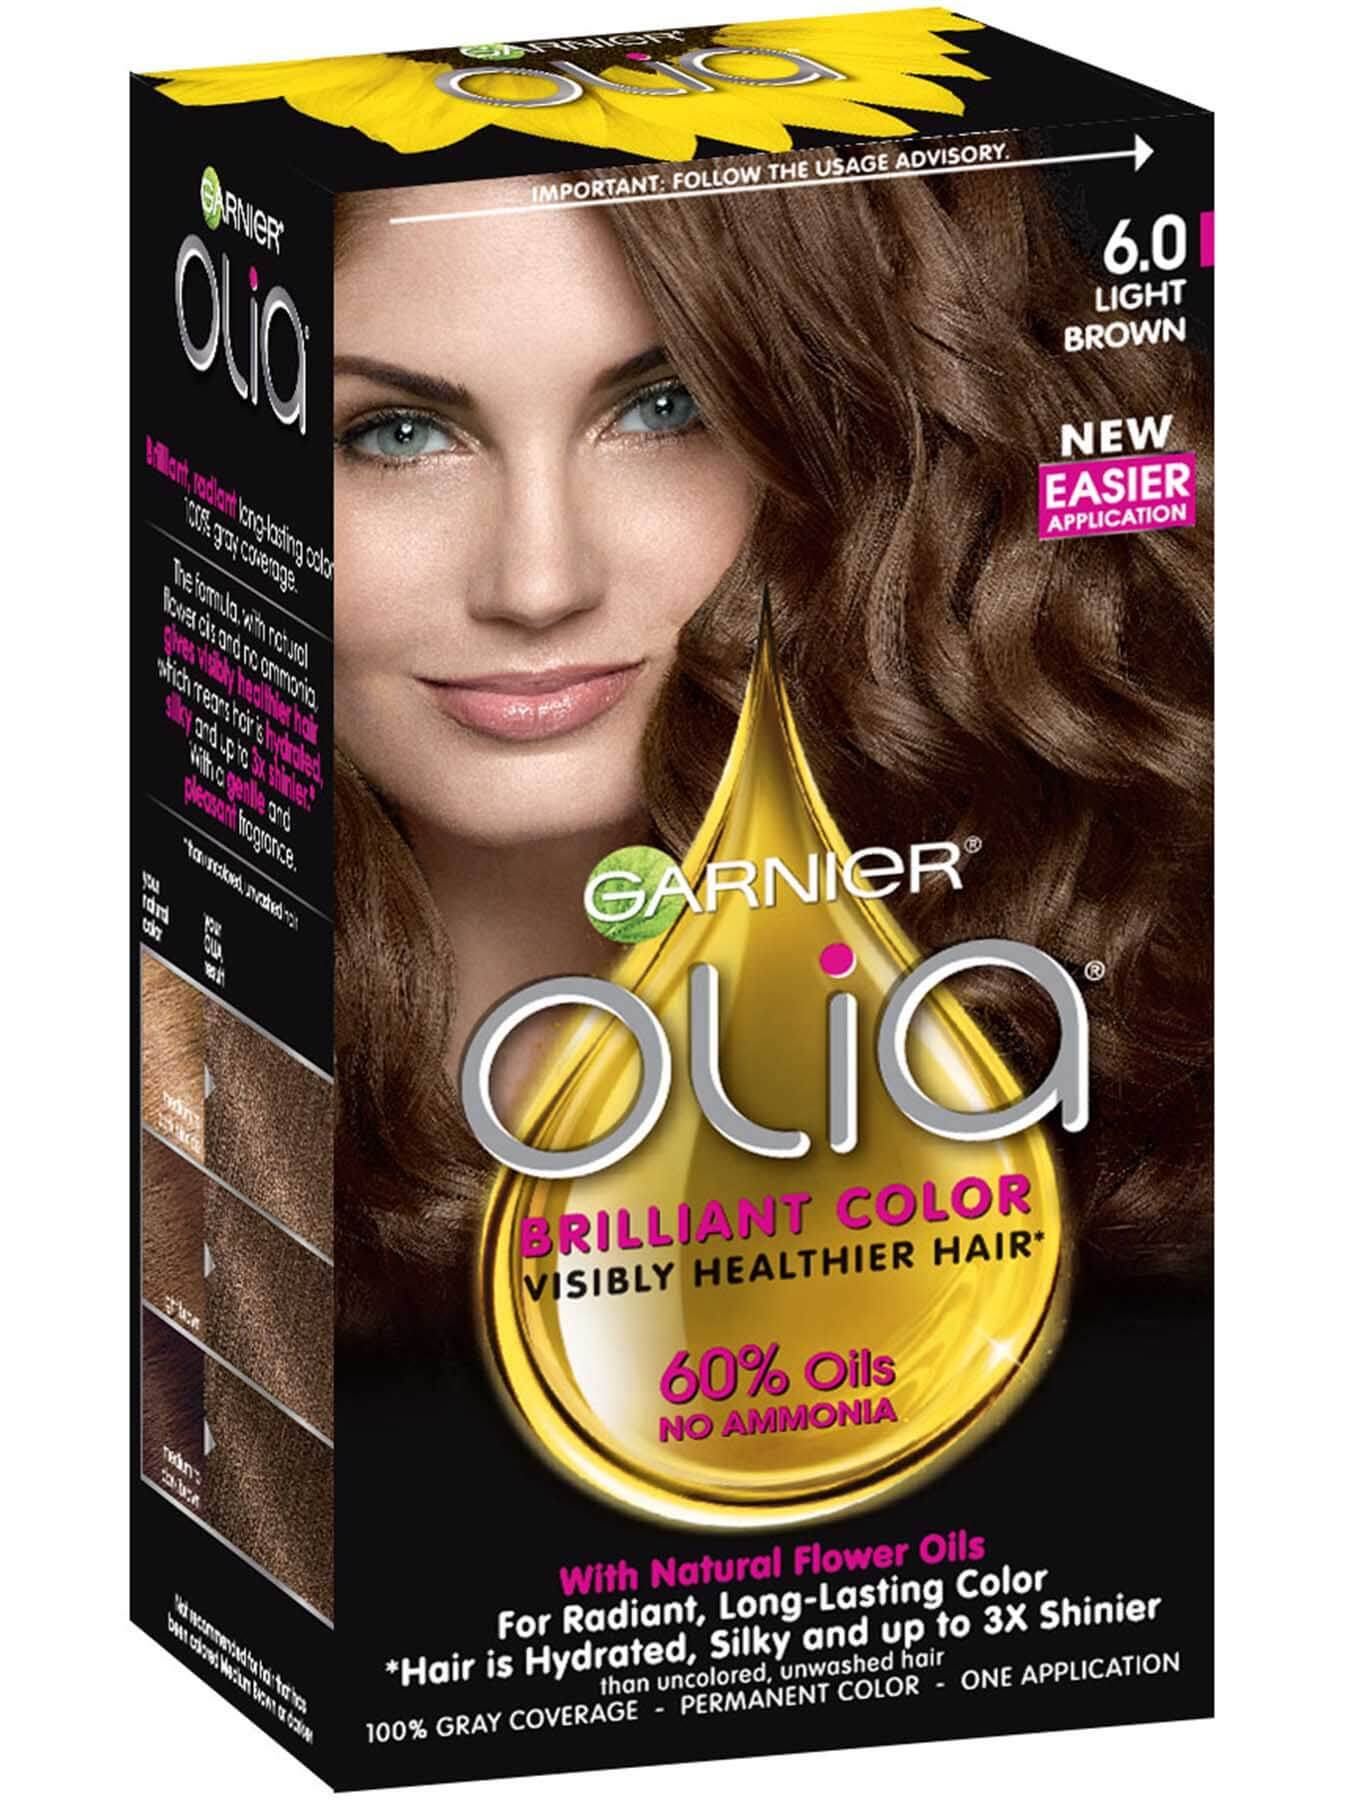 Olia Ammonia Free Permanent Hair Color Light Brown Garnier